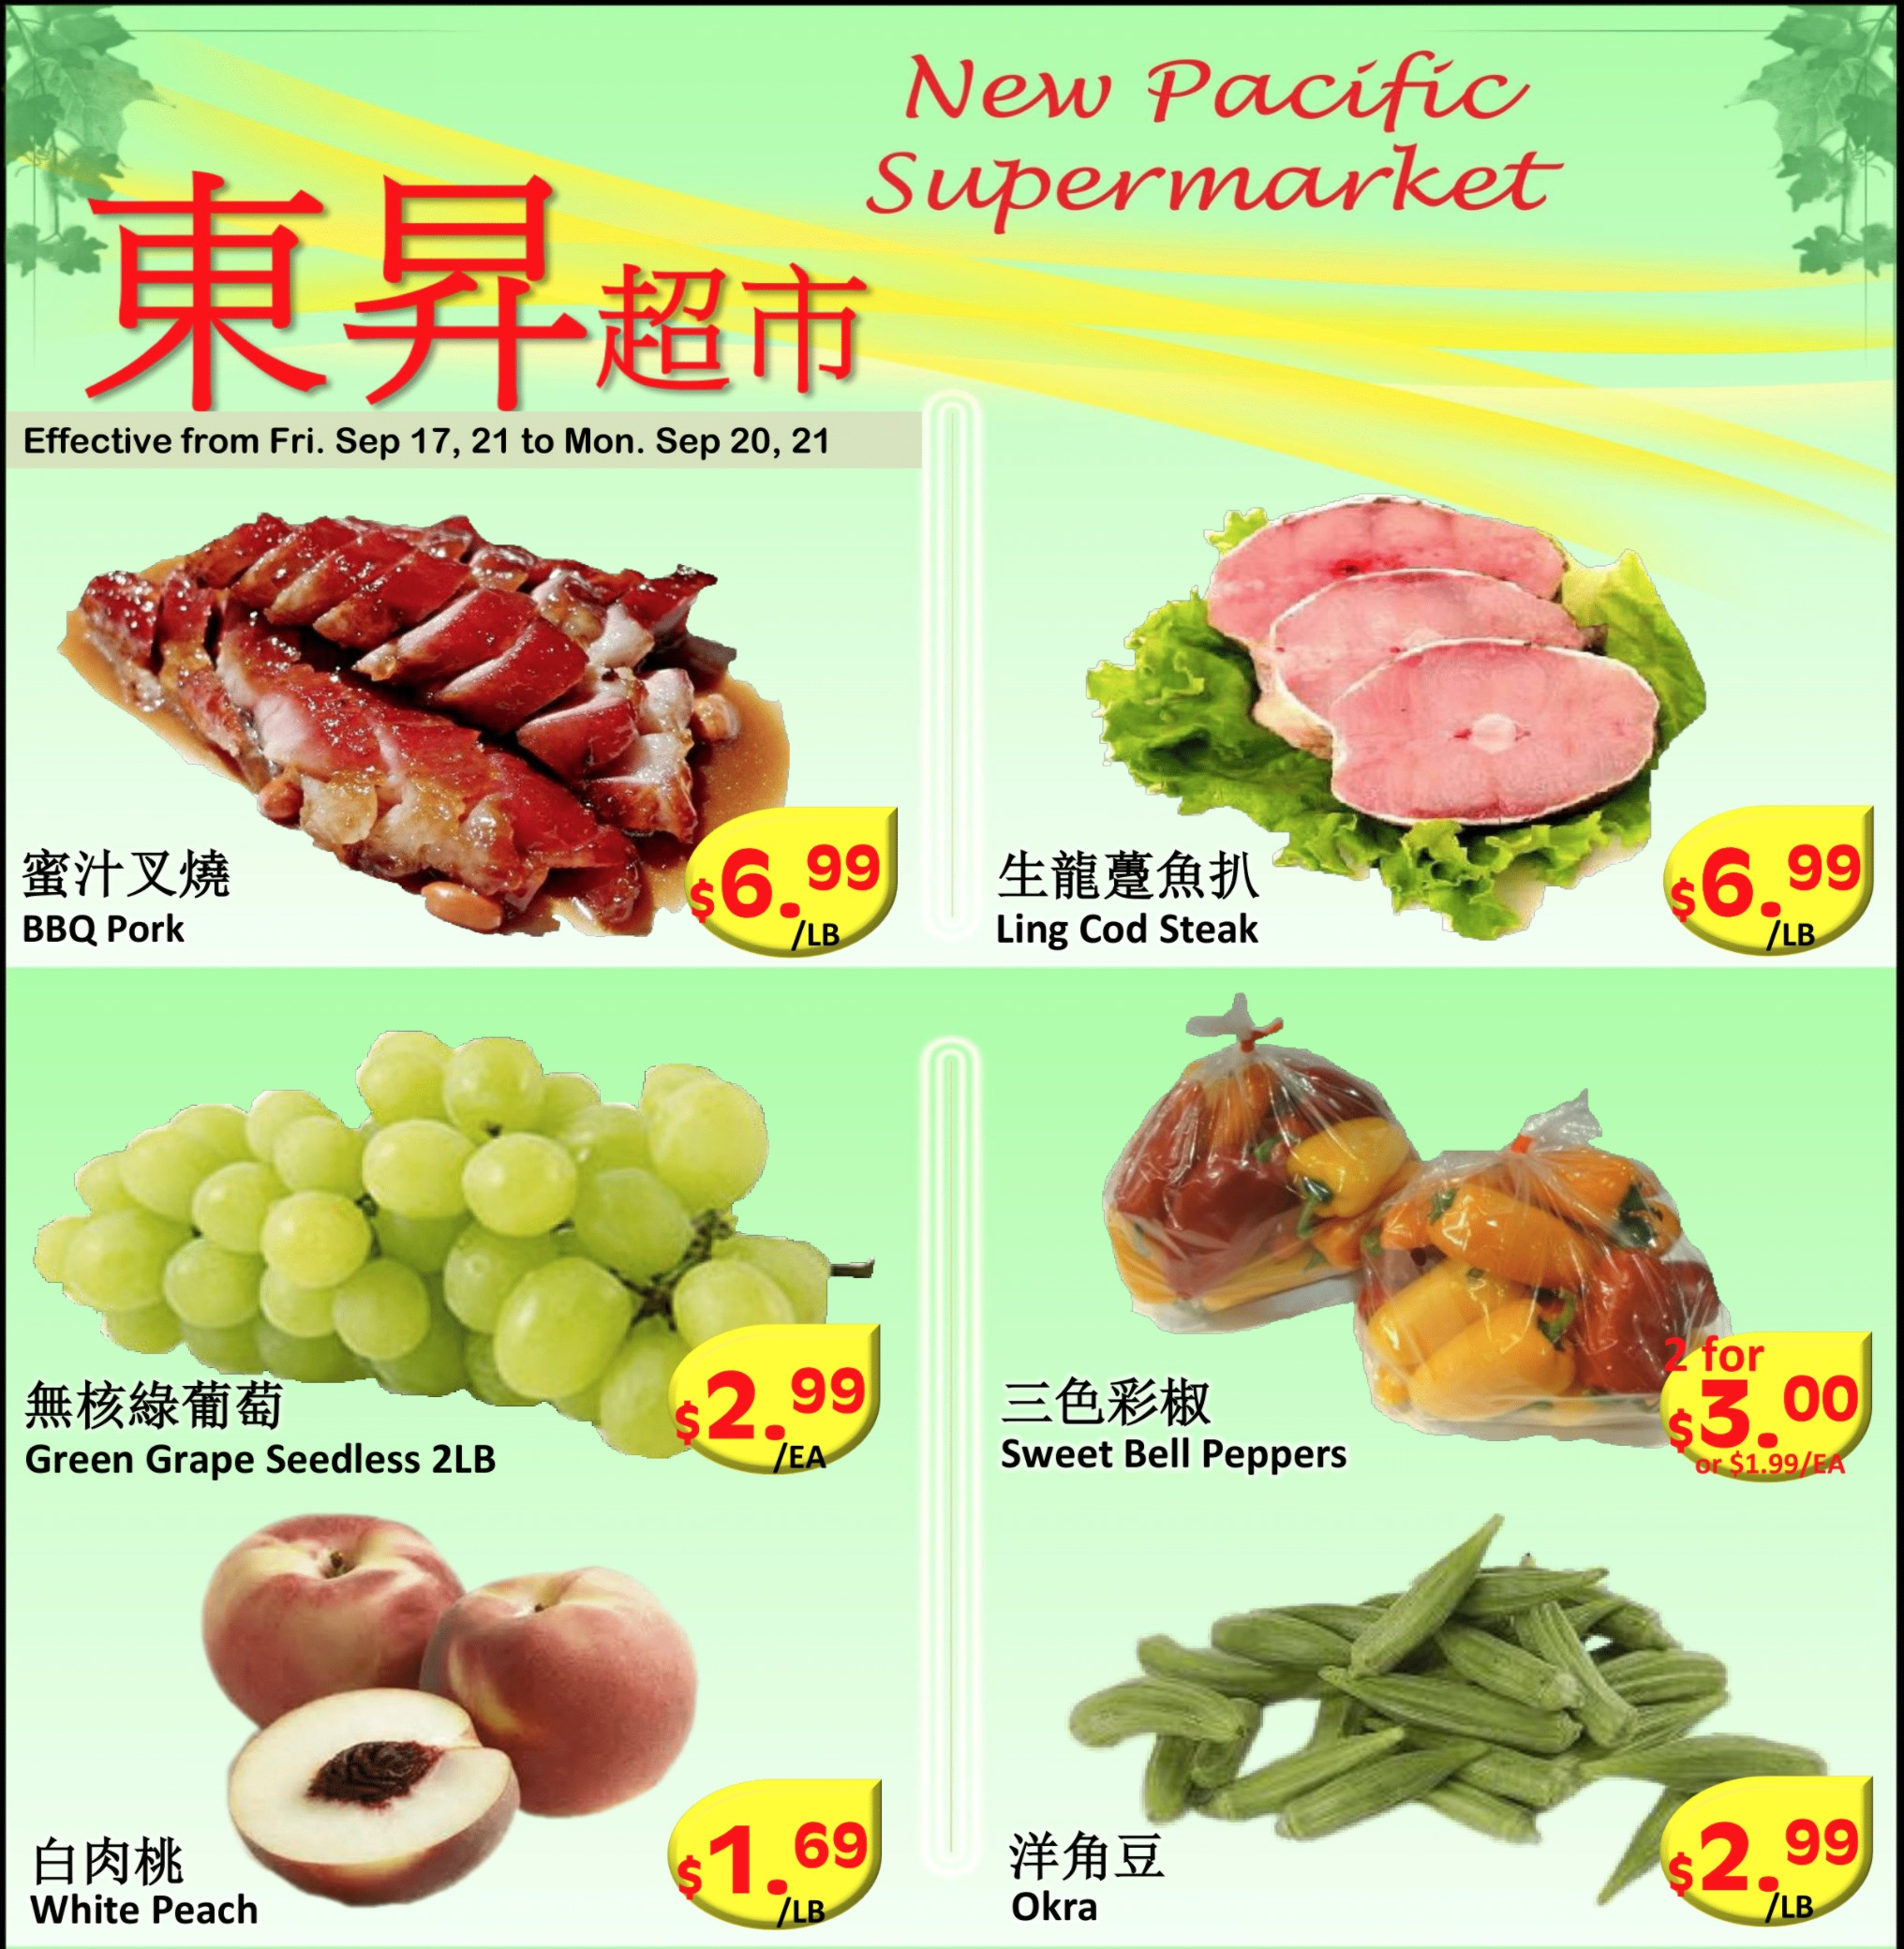 New Pacific Supermarket Flyer   Sep 17